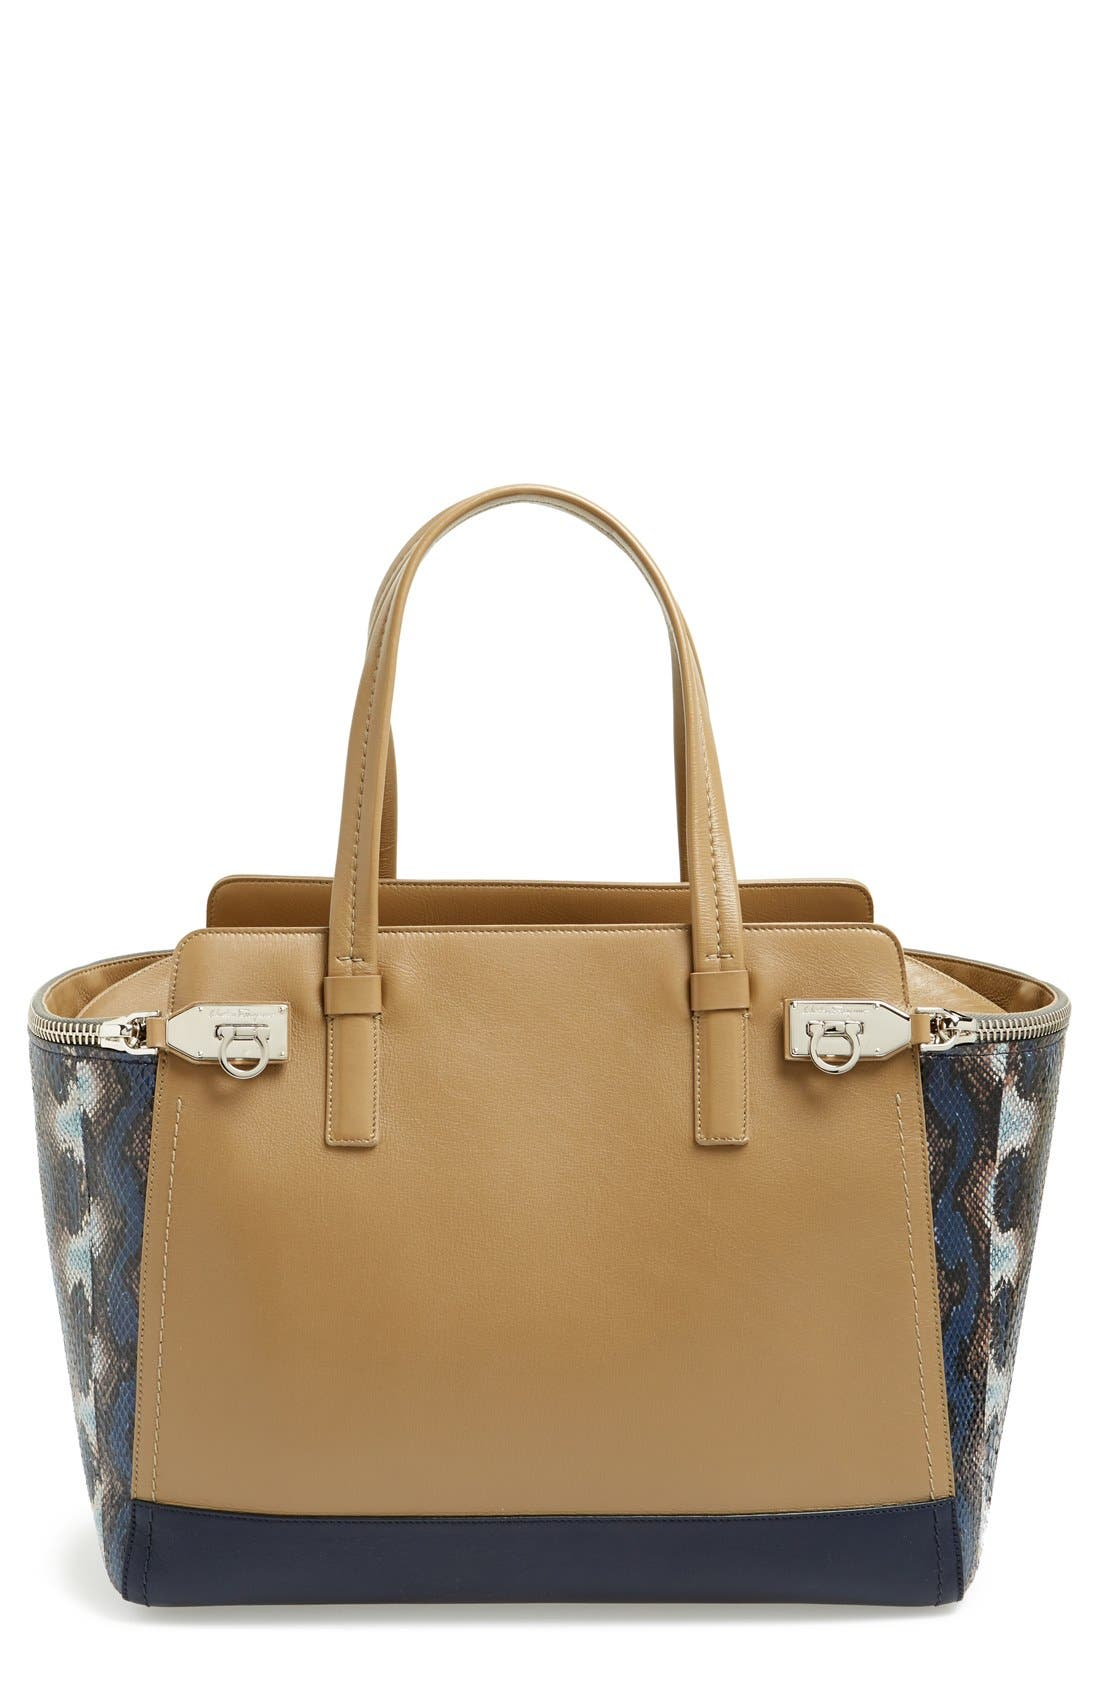 Main Image - Salvatore Ferragamo 'Verve' Leather & Python Satchel